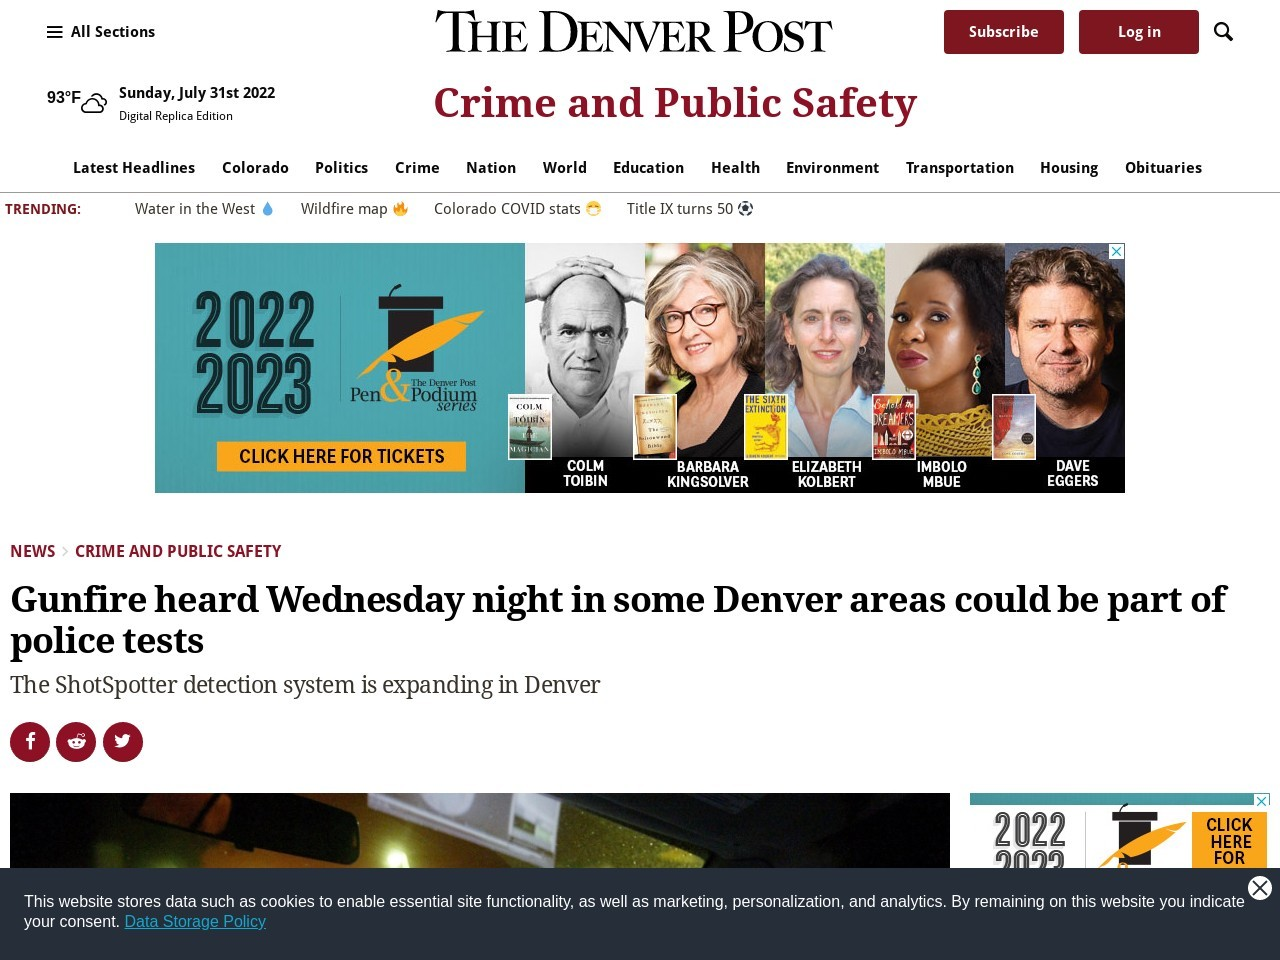 Gunfire heard Wednesday night in some Denver areas could be part of police tests